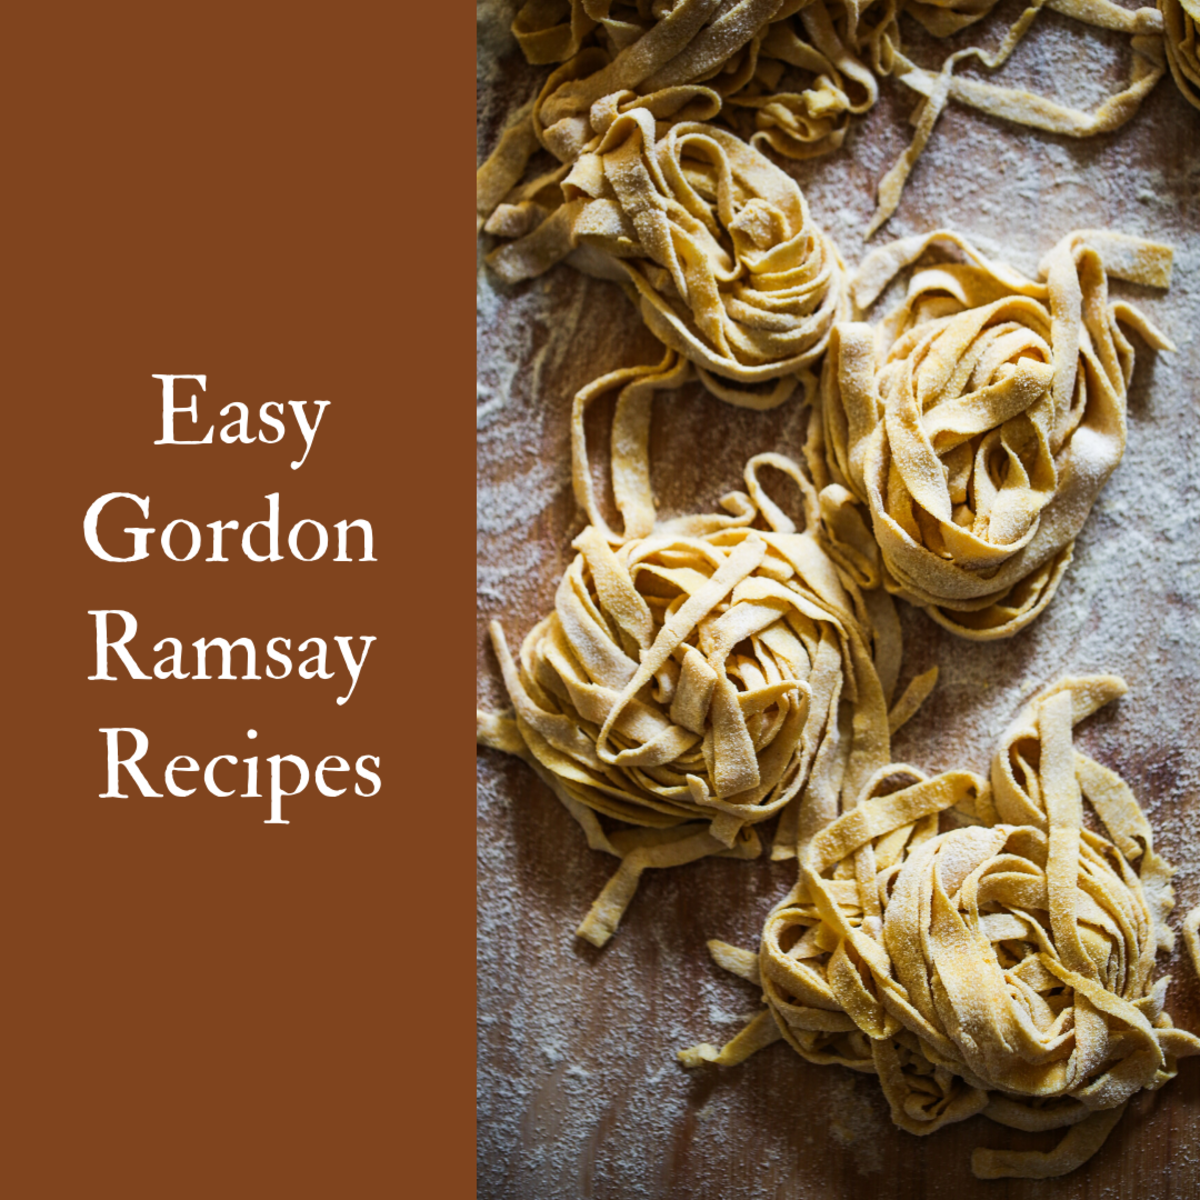 Gordon Ramsay Recipes That Are Easy to Make at Home